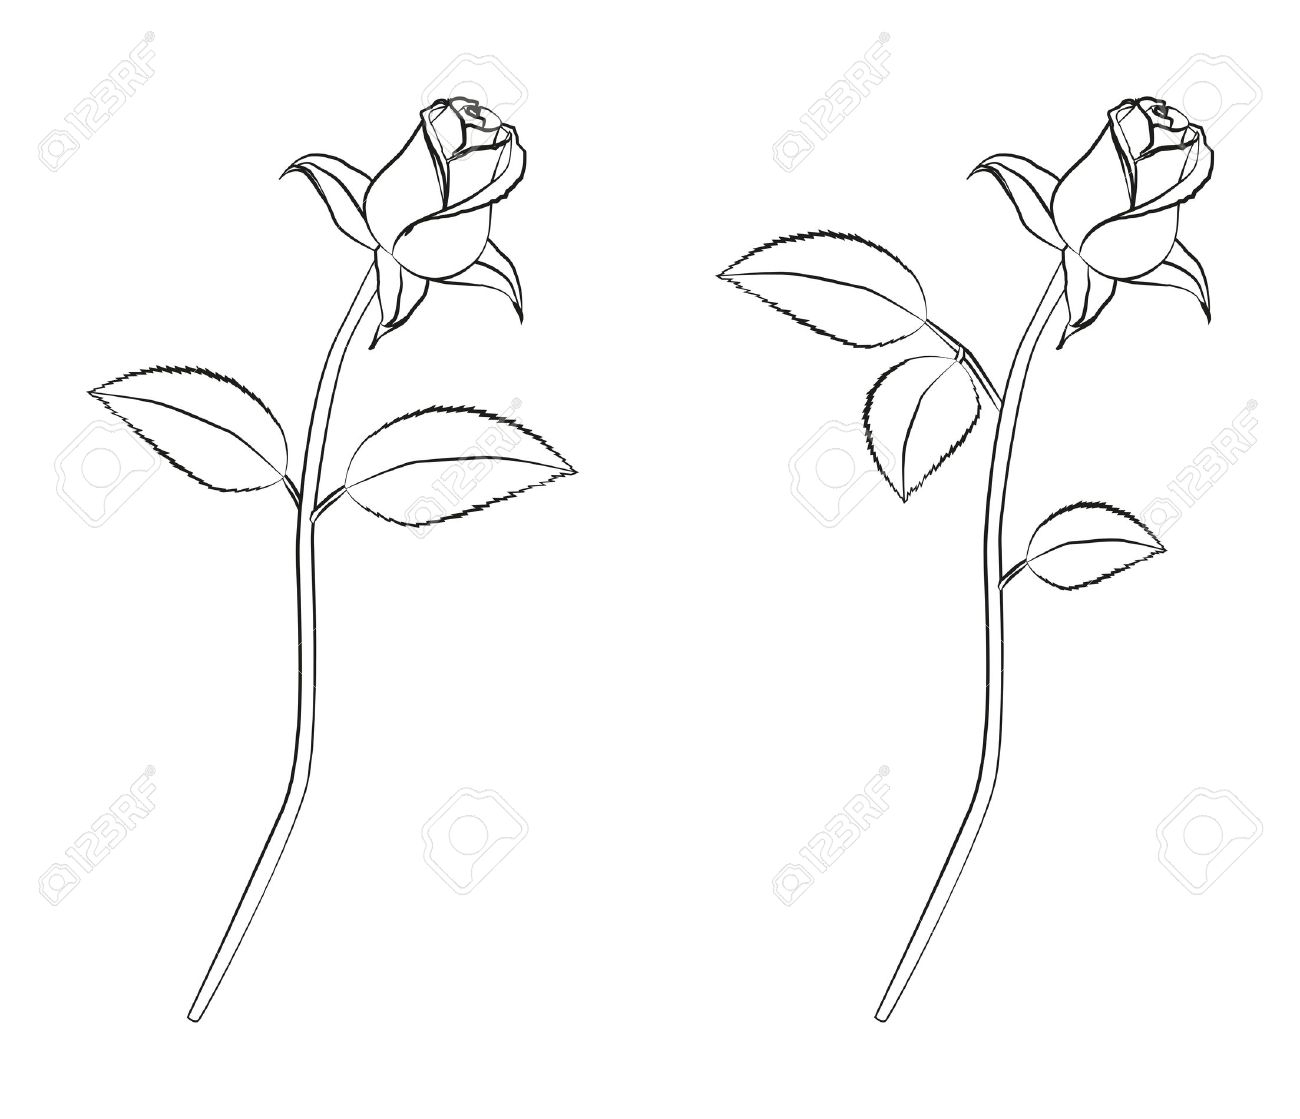 1300x1119 Drawing A Rose Bud Detailed Linework Of A Rose Royalty Free